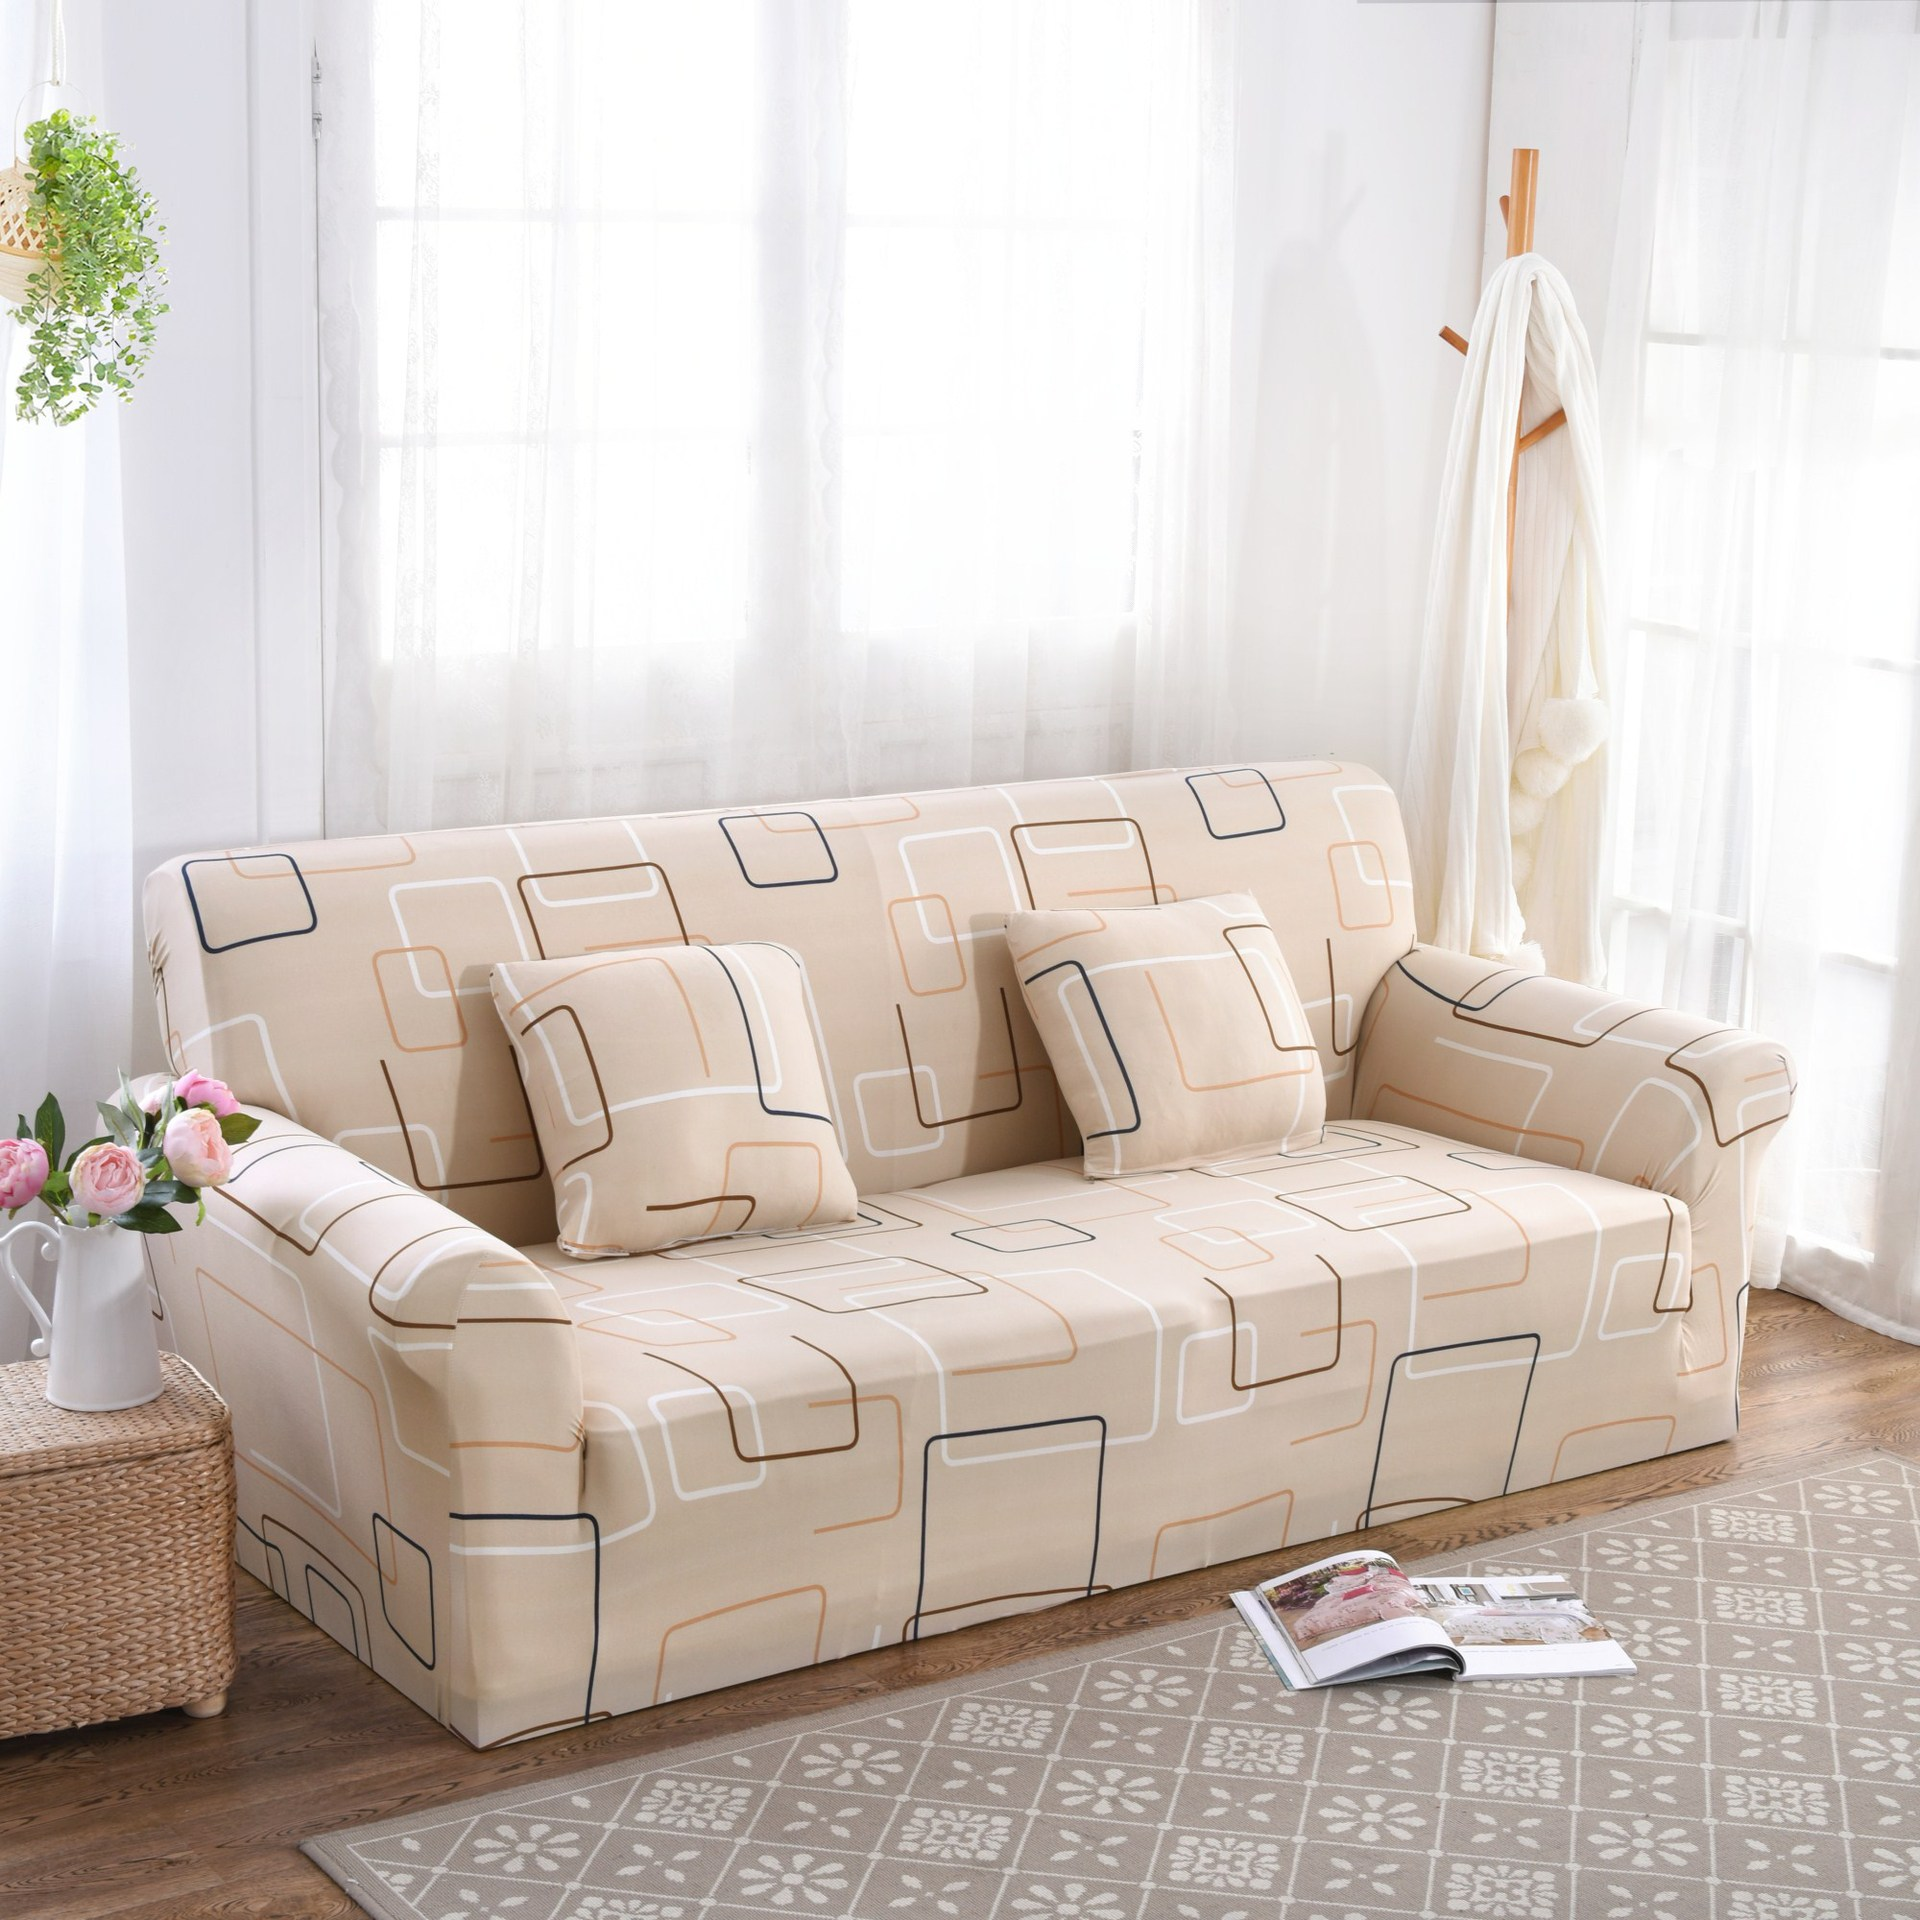 line Buy Wholesale leather sofa cover from China leather sofa